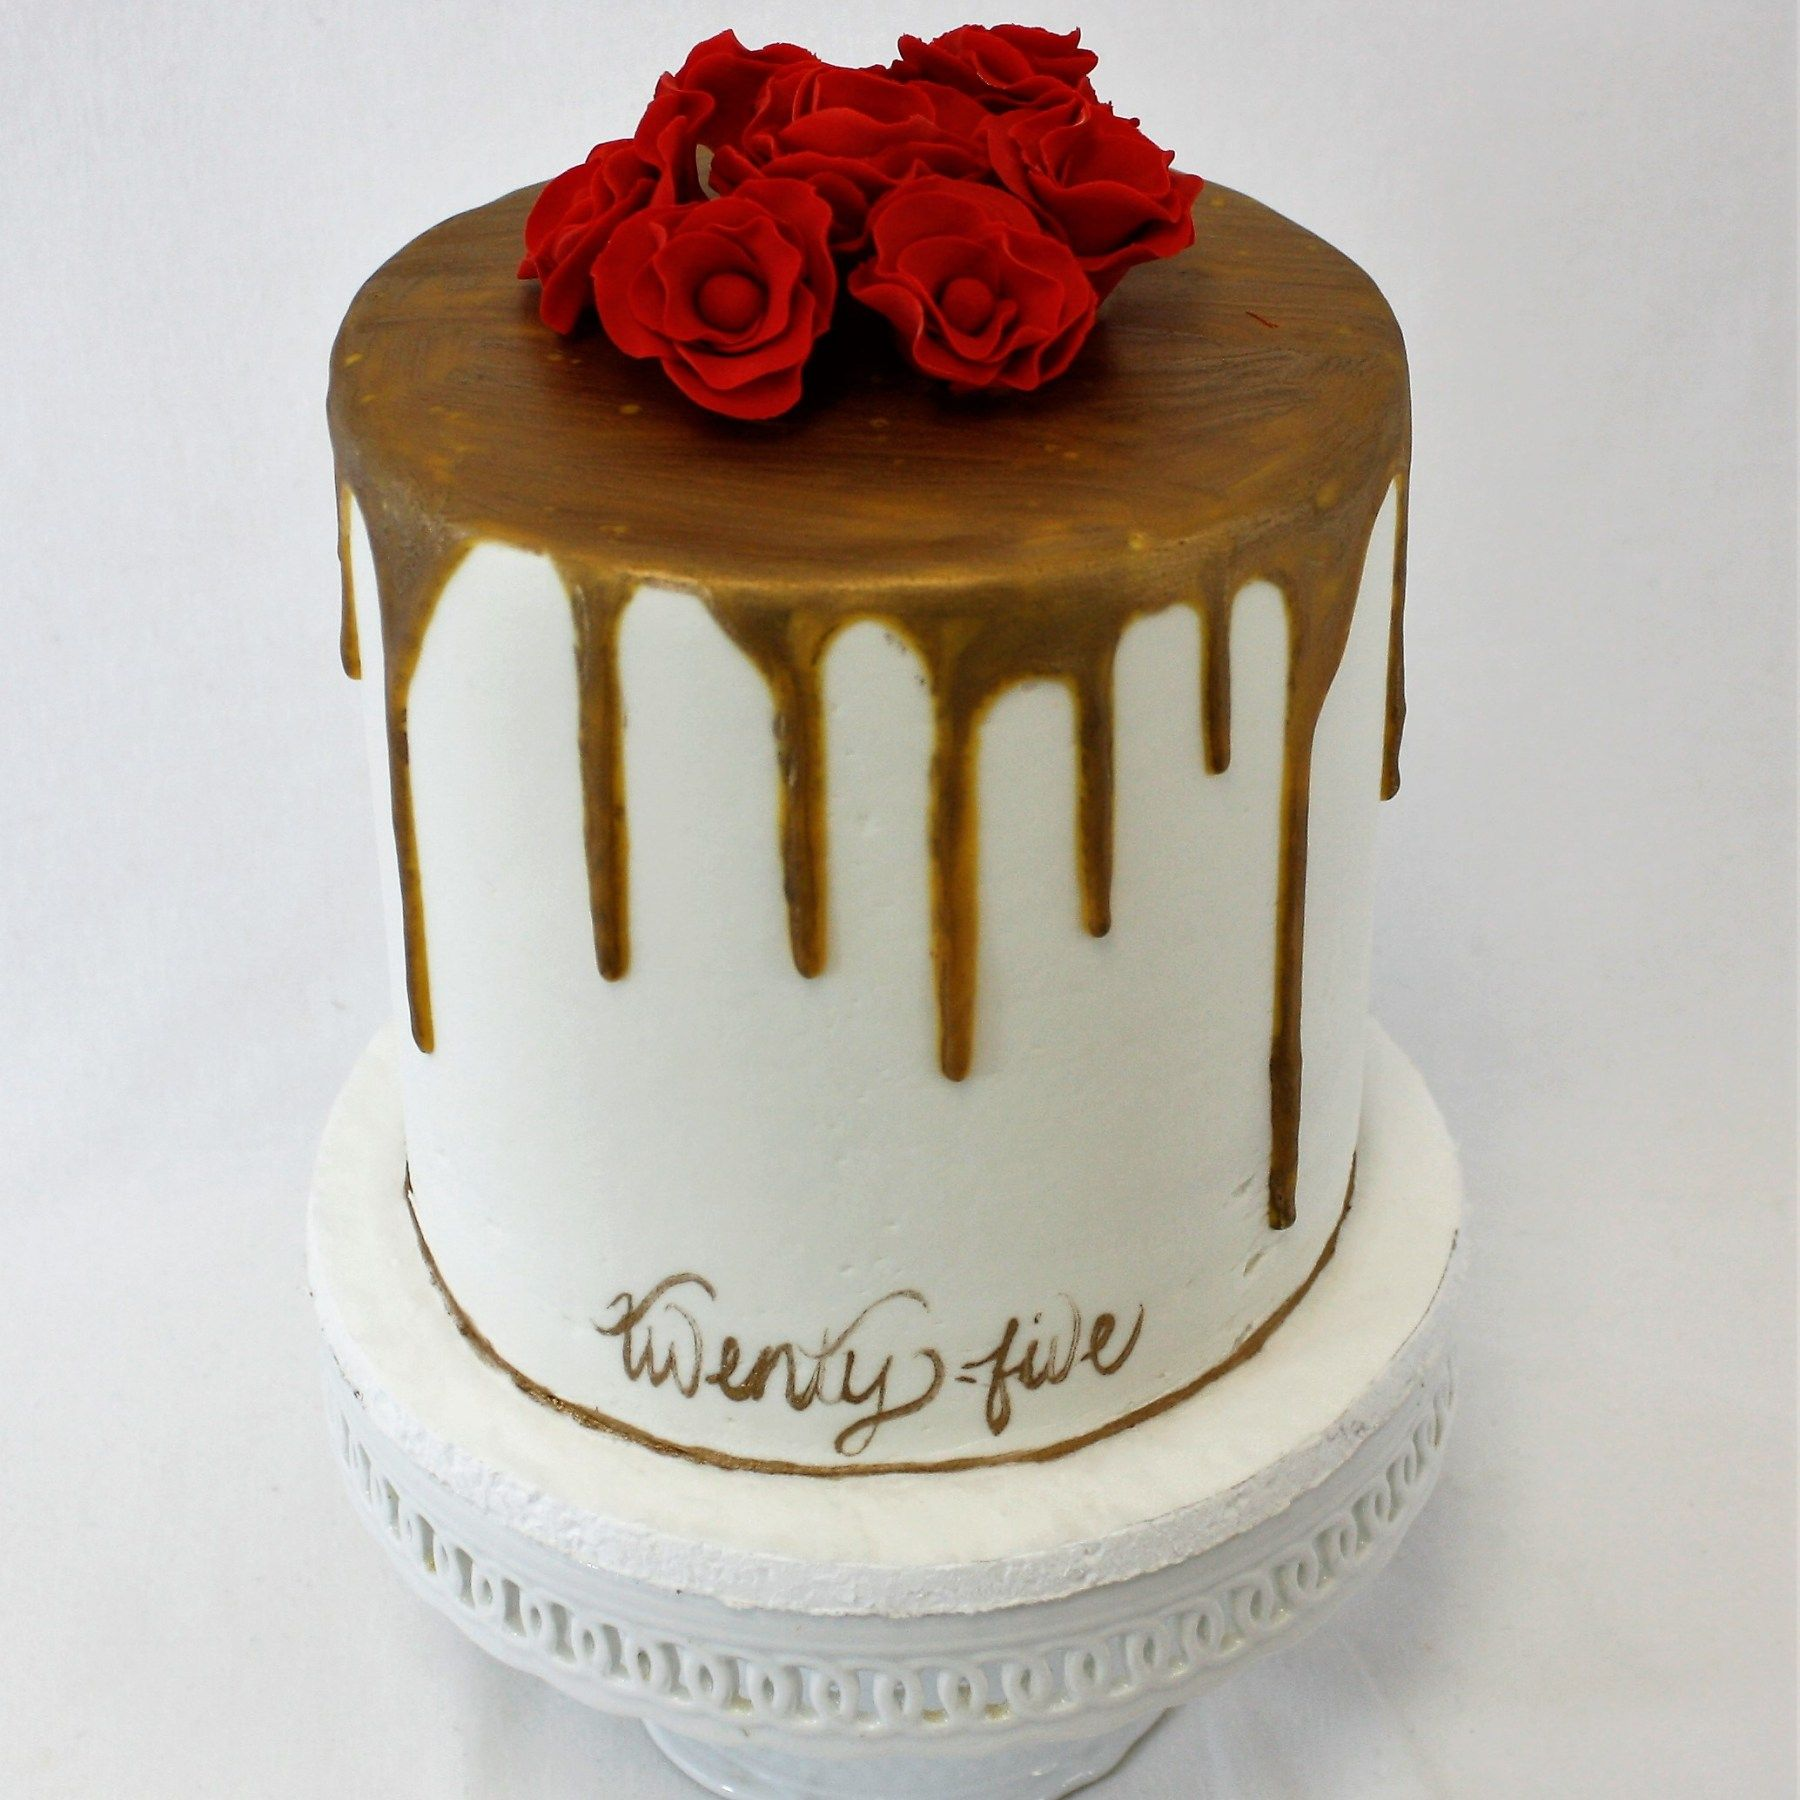 Triple Layer Old Gold Drip Red Rose Birthday Cake FB-125 Triple Layer Gold Drip Cake  Confection Perfection Cakes - Online Ordering